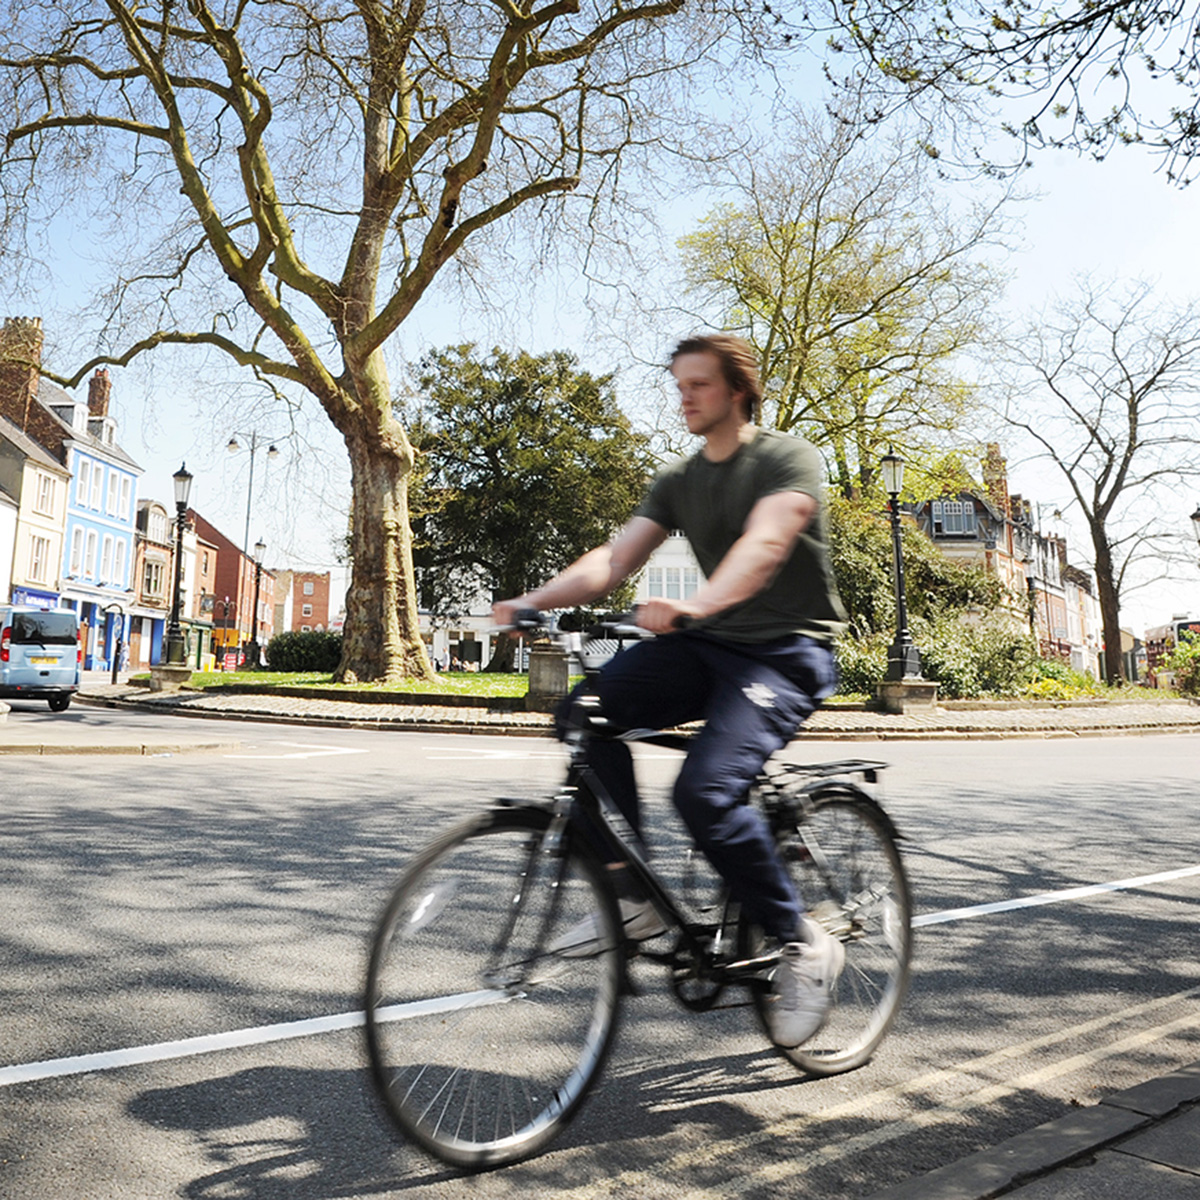 Cycle improvements are to take place in Harwell